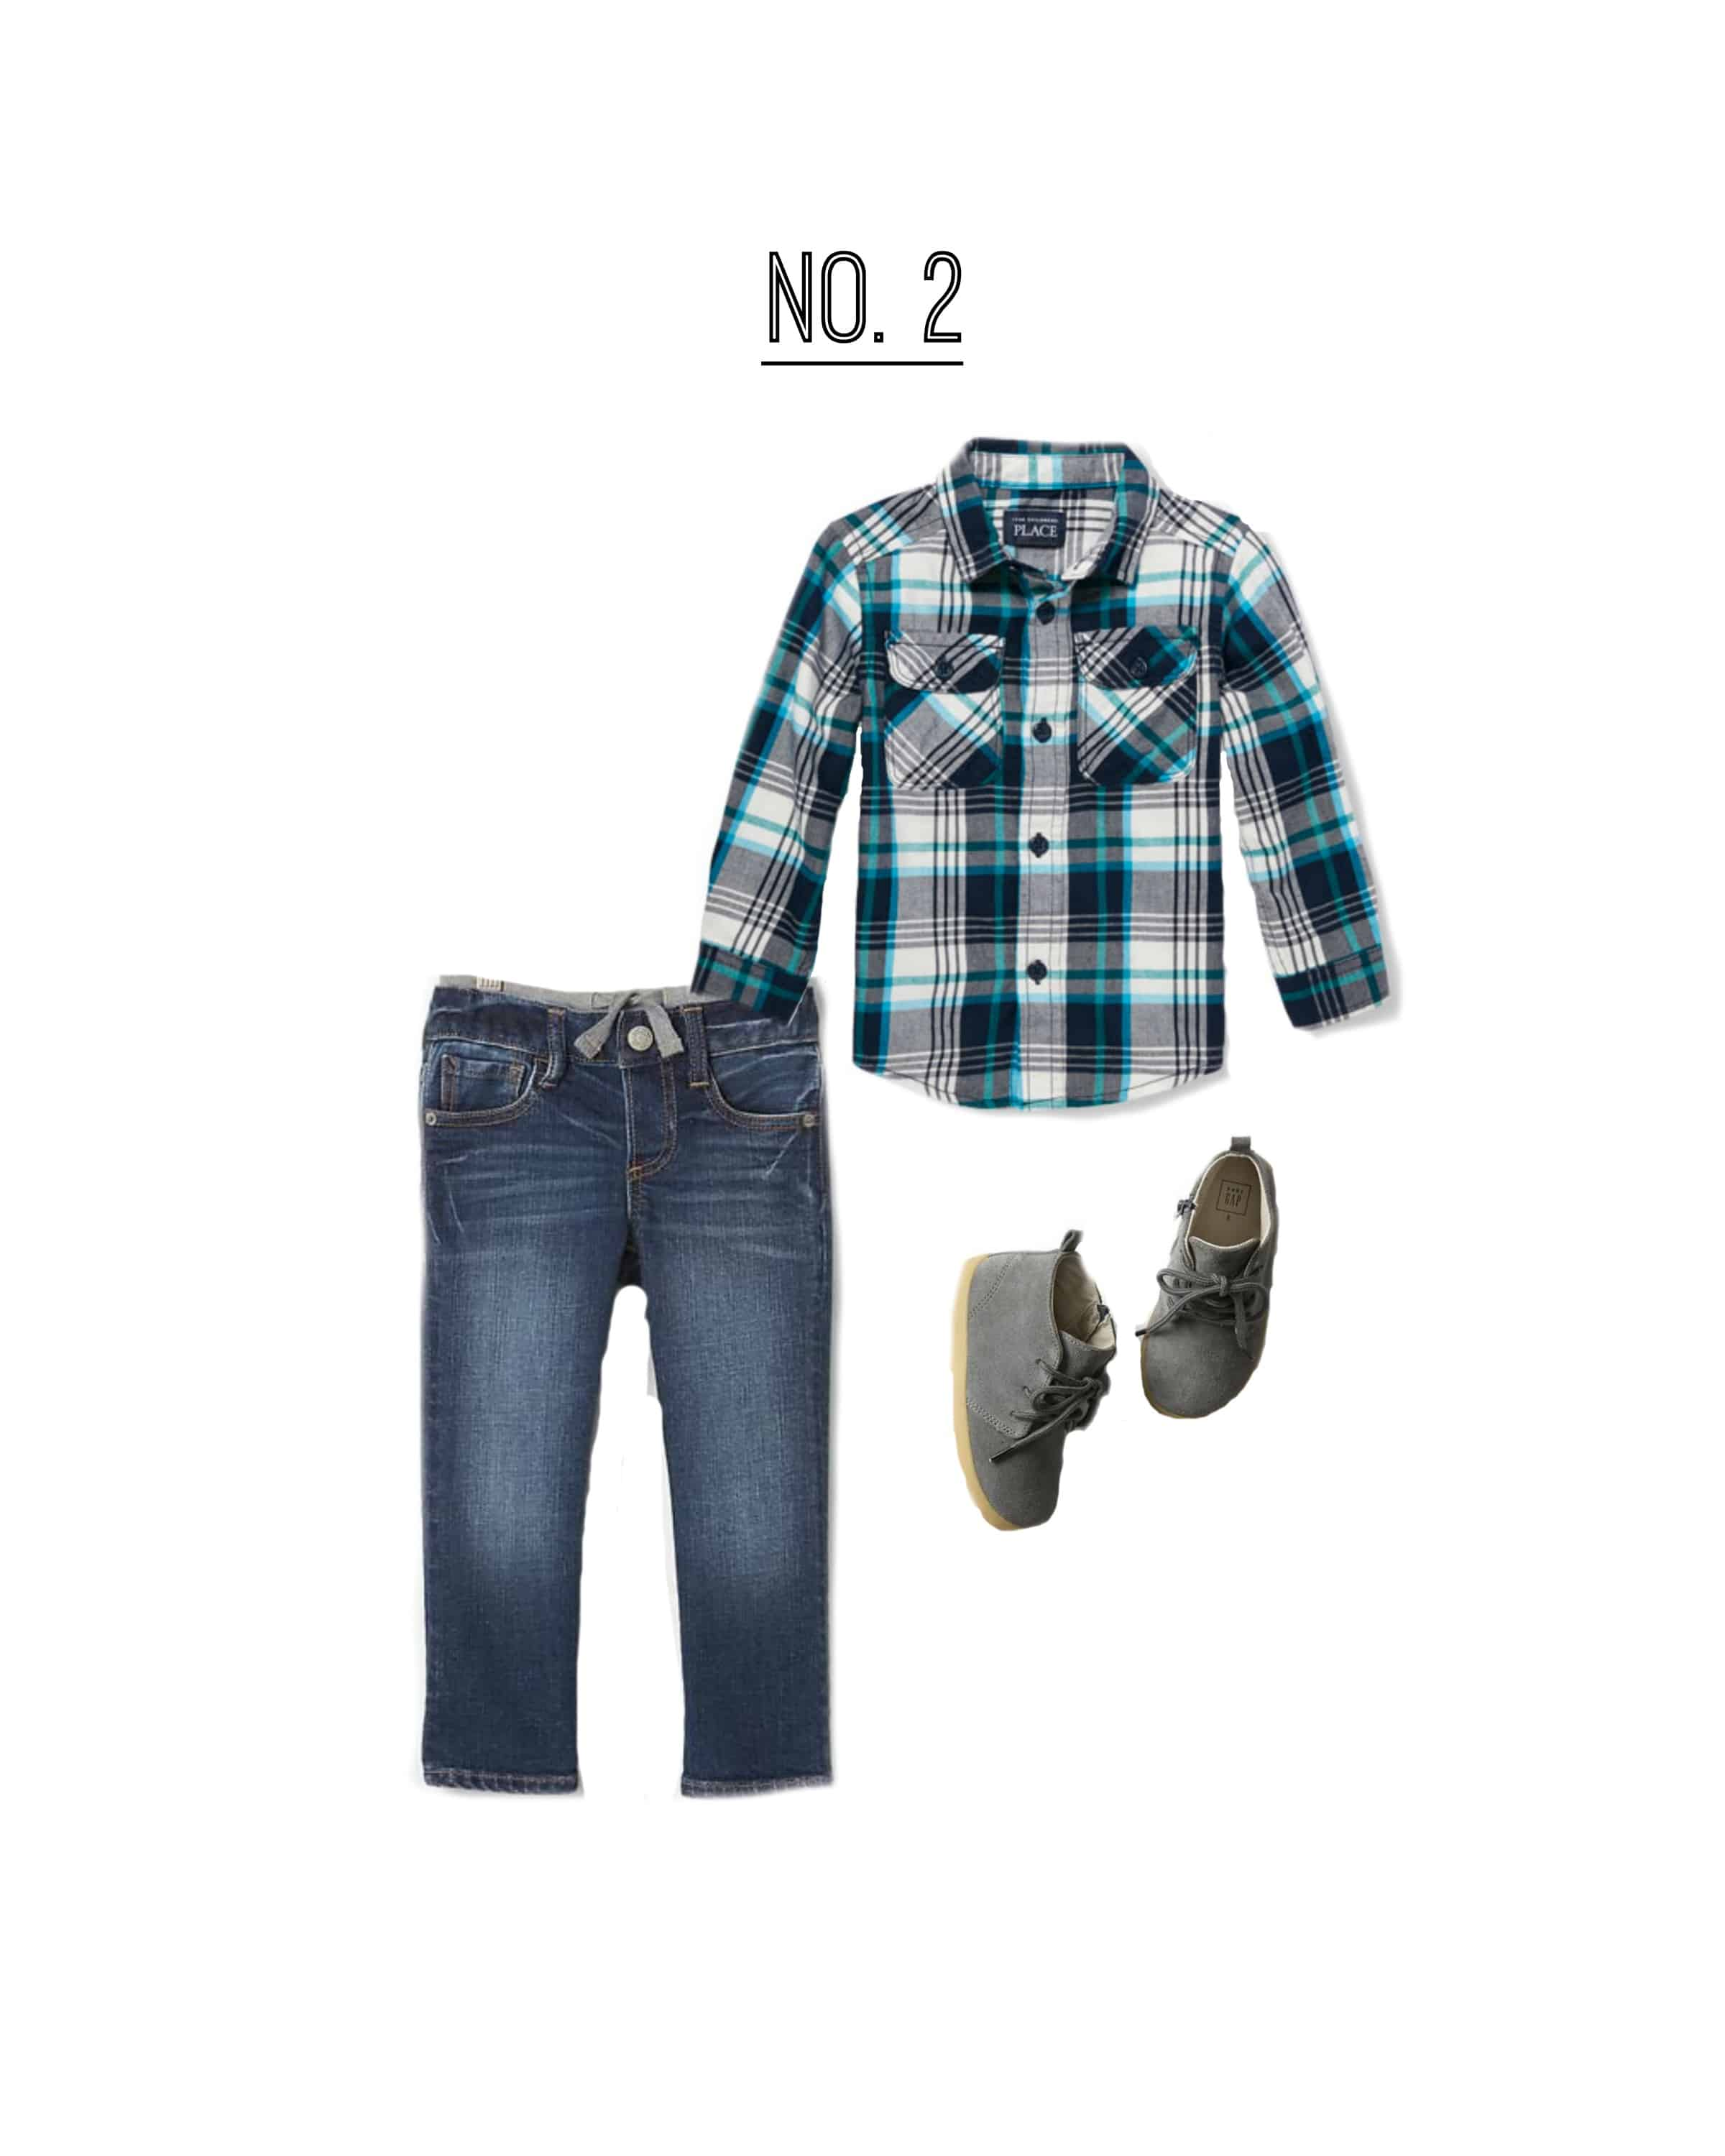 A fantastic outfit for a toodler to wear for Fall family photos!